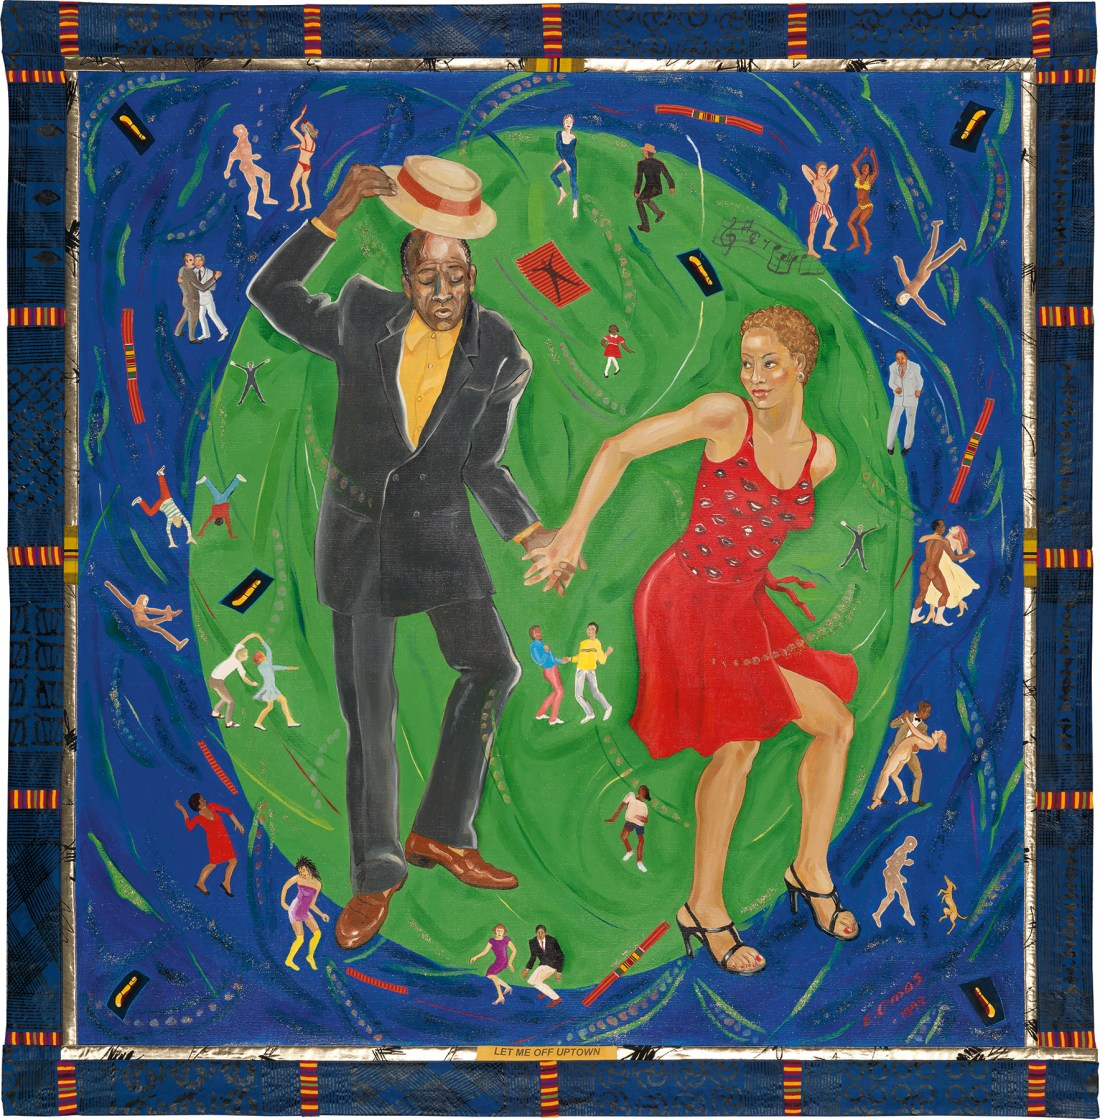 Emma Amos's mixed-media work Let Me Off Uptown is a large, square piece that showcases a dancing couple who hold hands. The black, besuited gentleman dancer tips his hat to the light-skinned woman, who has black stiletto heels and a spaghetti-strap red dress that falls to the knee. A green circle behind the couple draws the eye to them. Tiny figures appear across the background. All are jubilant. Most are dancing. All races and ages are represented, and there's at least one dancing dog.